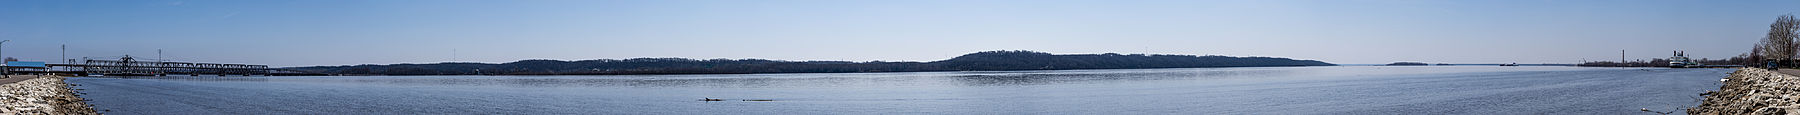 Panorama of Mississippi River, taken from the shore of the river at Riverview Park in Fort Madison, Iowa